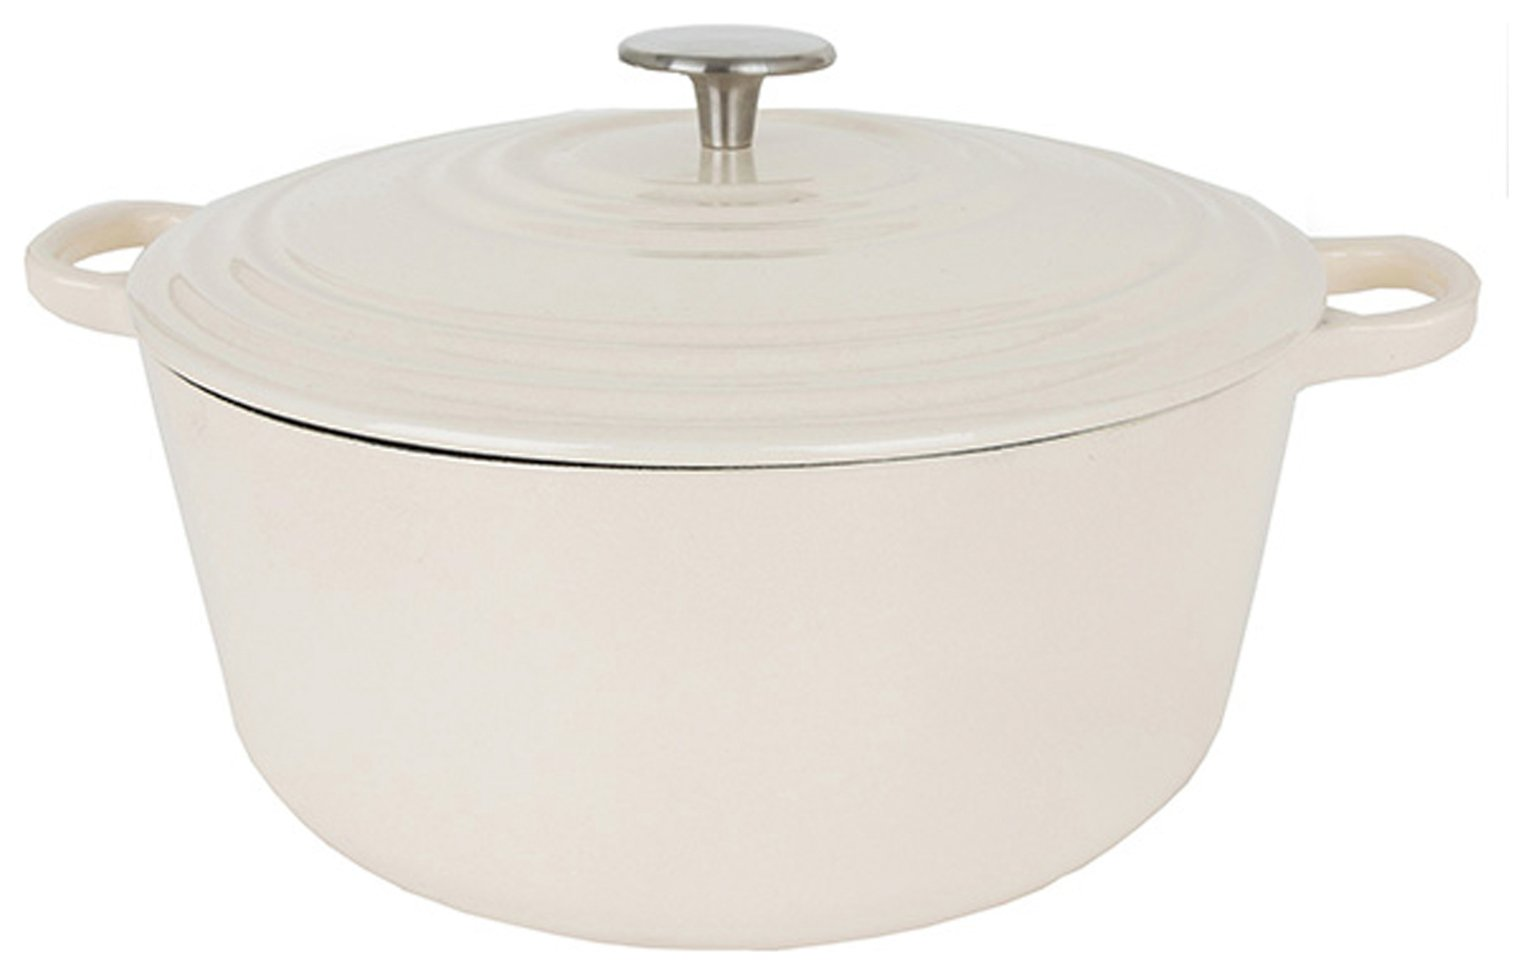 Sainsbury's Home 2.4 Litre Cast Iron Casserole Dish - Cream